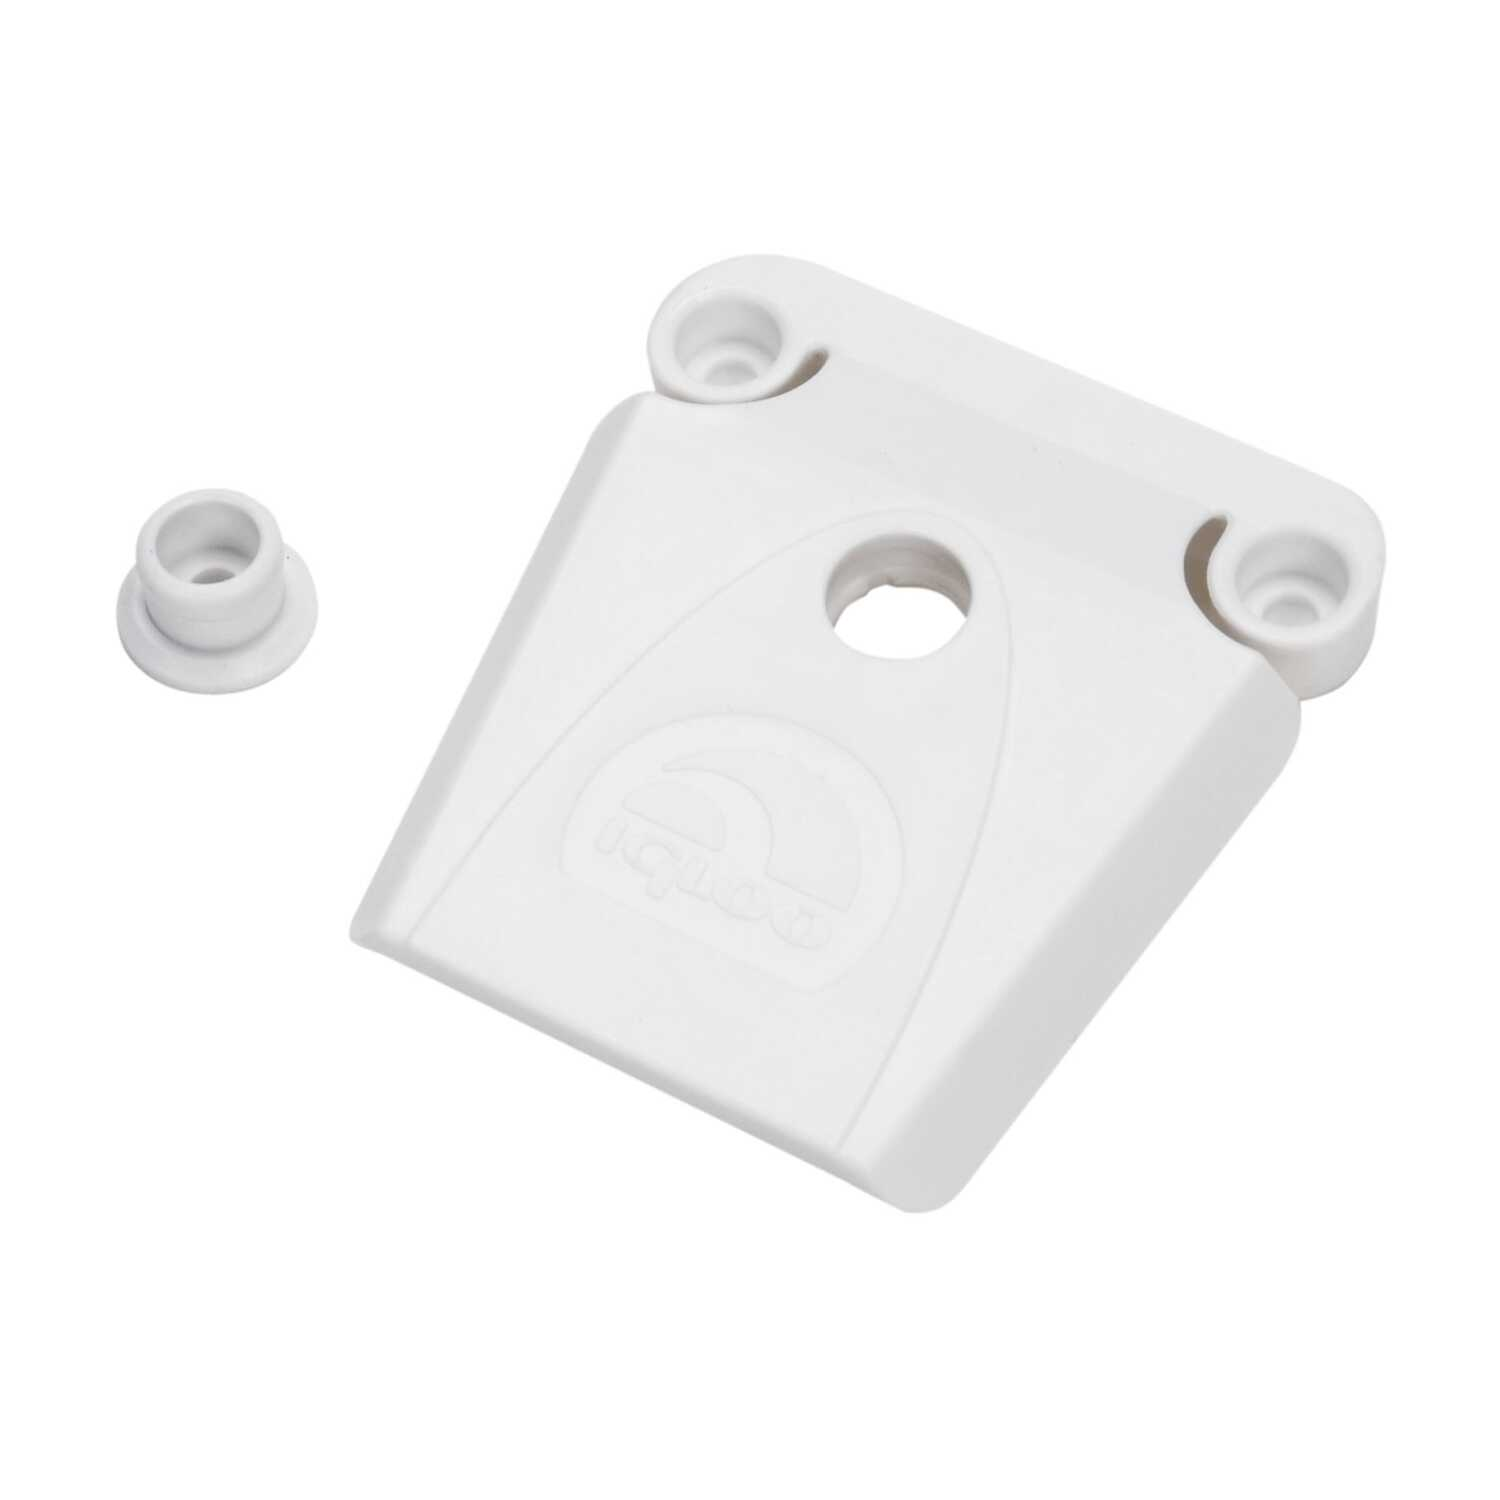 Igloo  Latch  50-165  White  1 pk